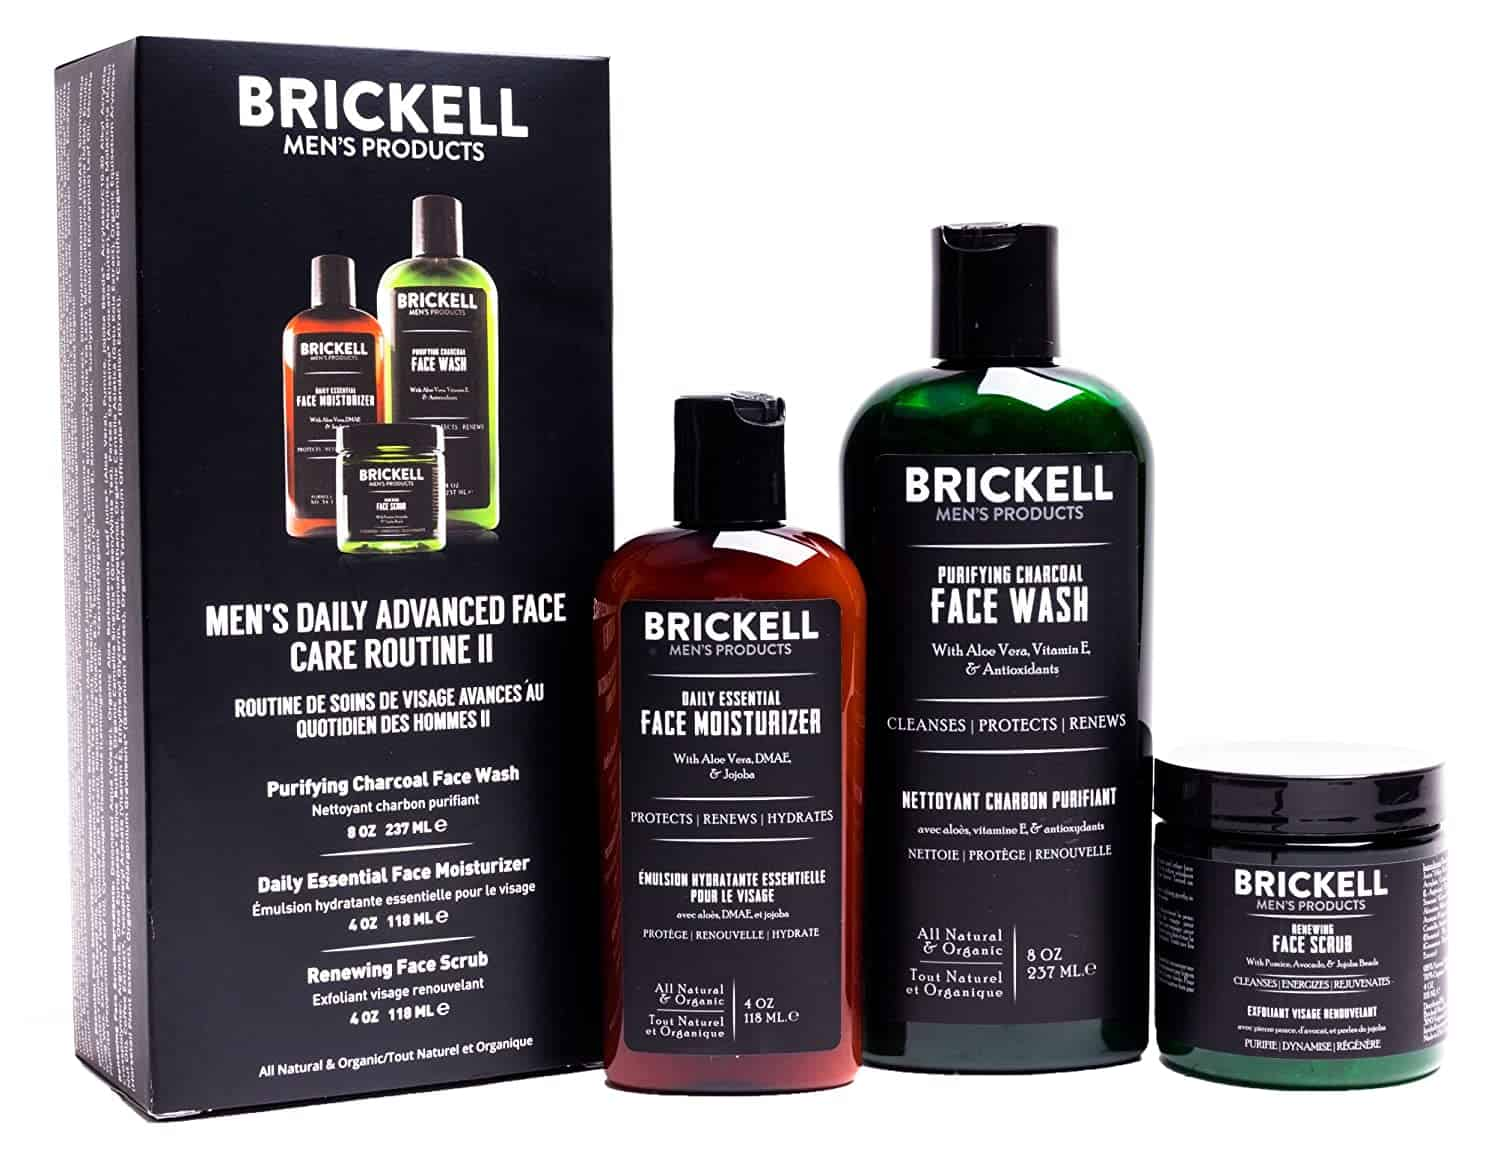 BRICKELL Mens Grooming Products - self-care tips